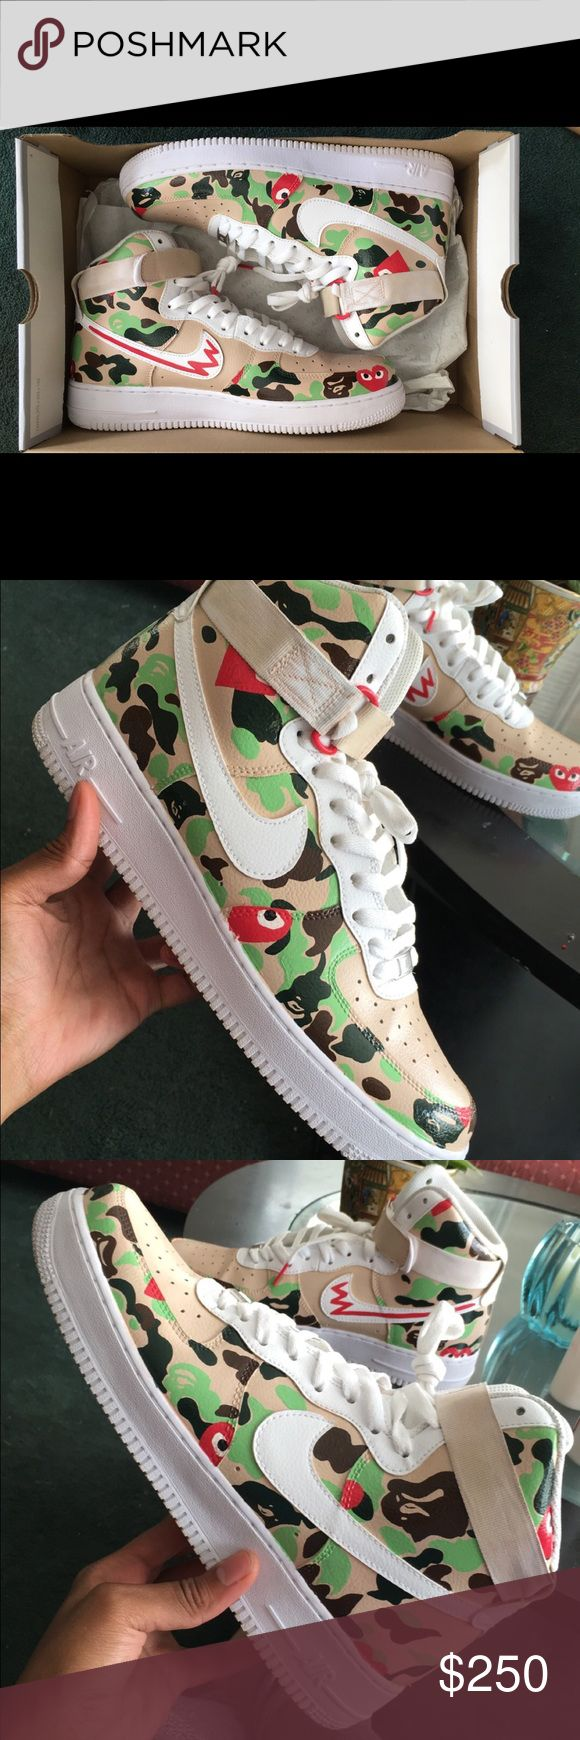 New heat customs Air Force 1 Nike Air Force 1 Comme de garçons and Bape collab customs make offers but I take pride in my work so dont low ball me. If you want some done personally contact me. Nike Shoes Sneakers